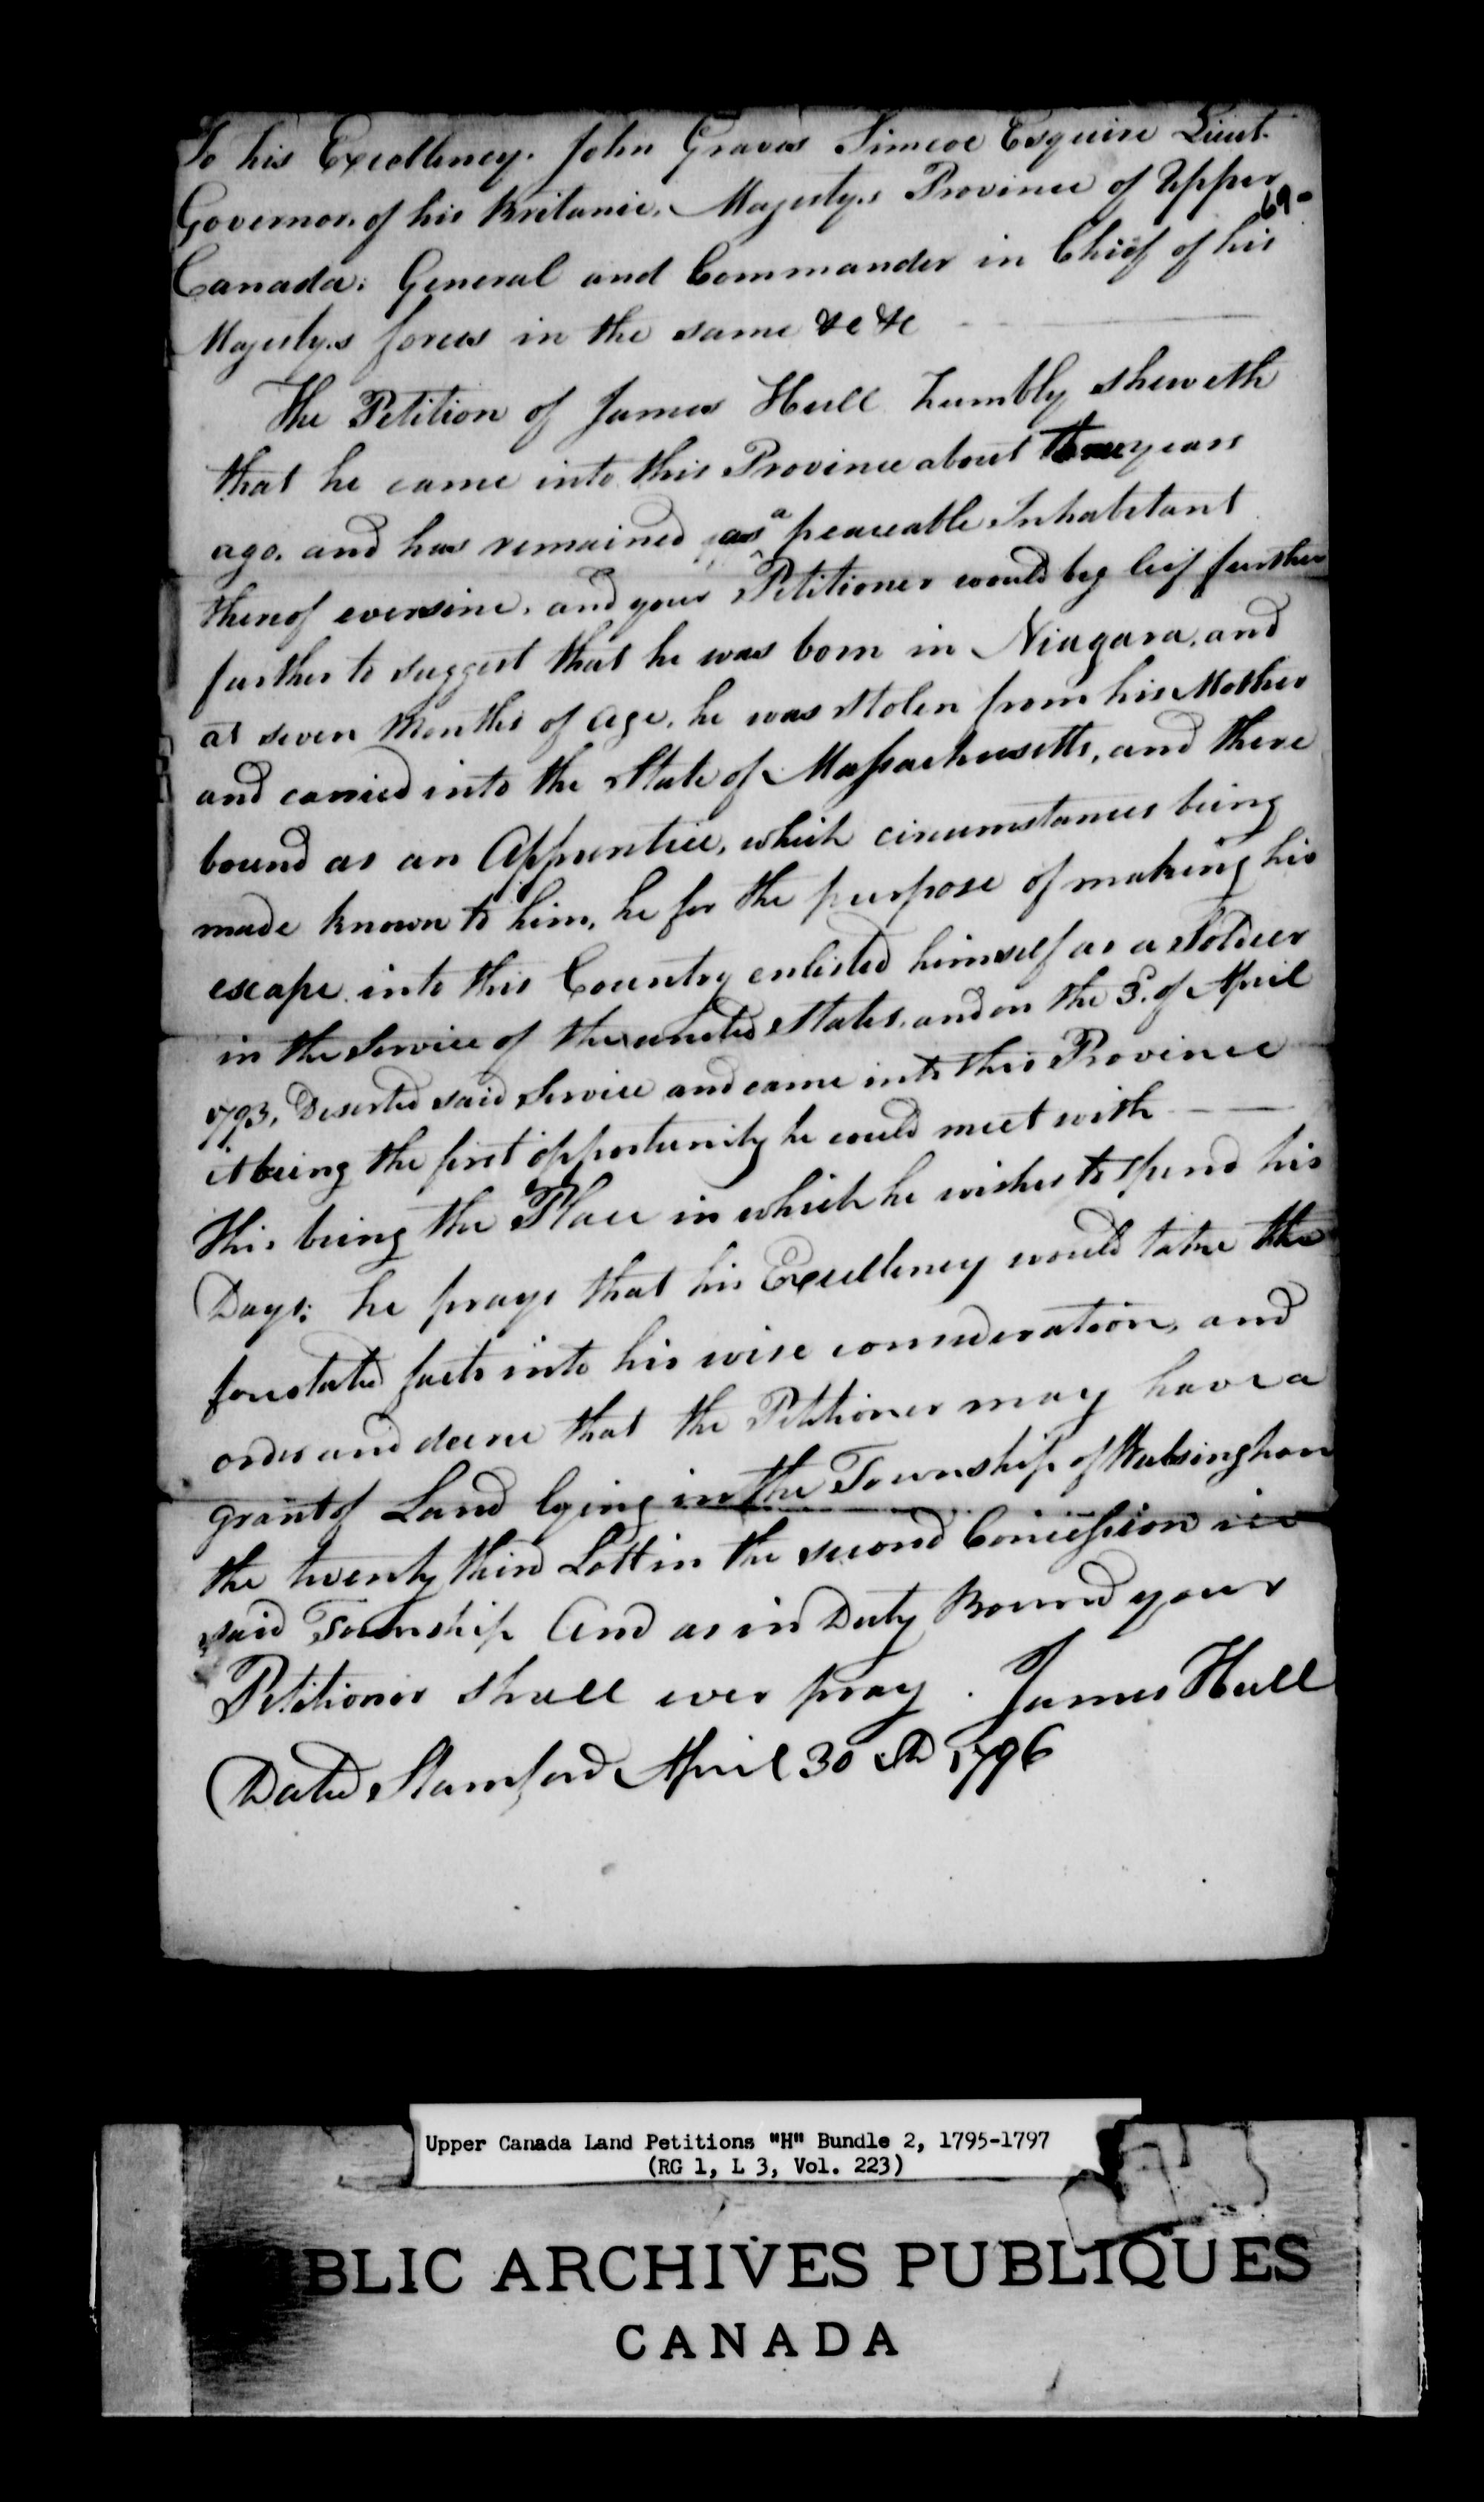 Title: Upper Canada Land Petitions (1763-1865) - Mikan Number: 205131 - Microform: c-2043